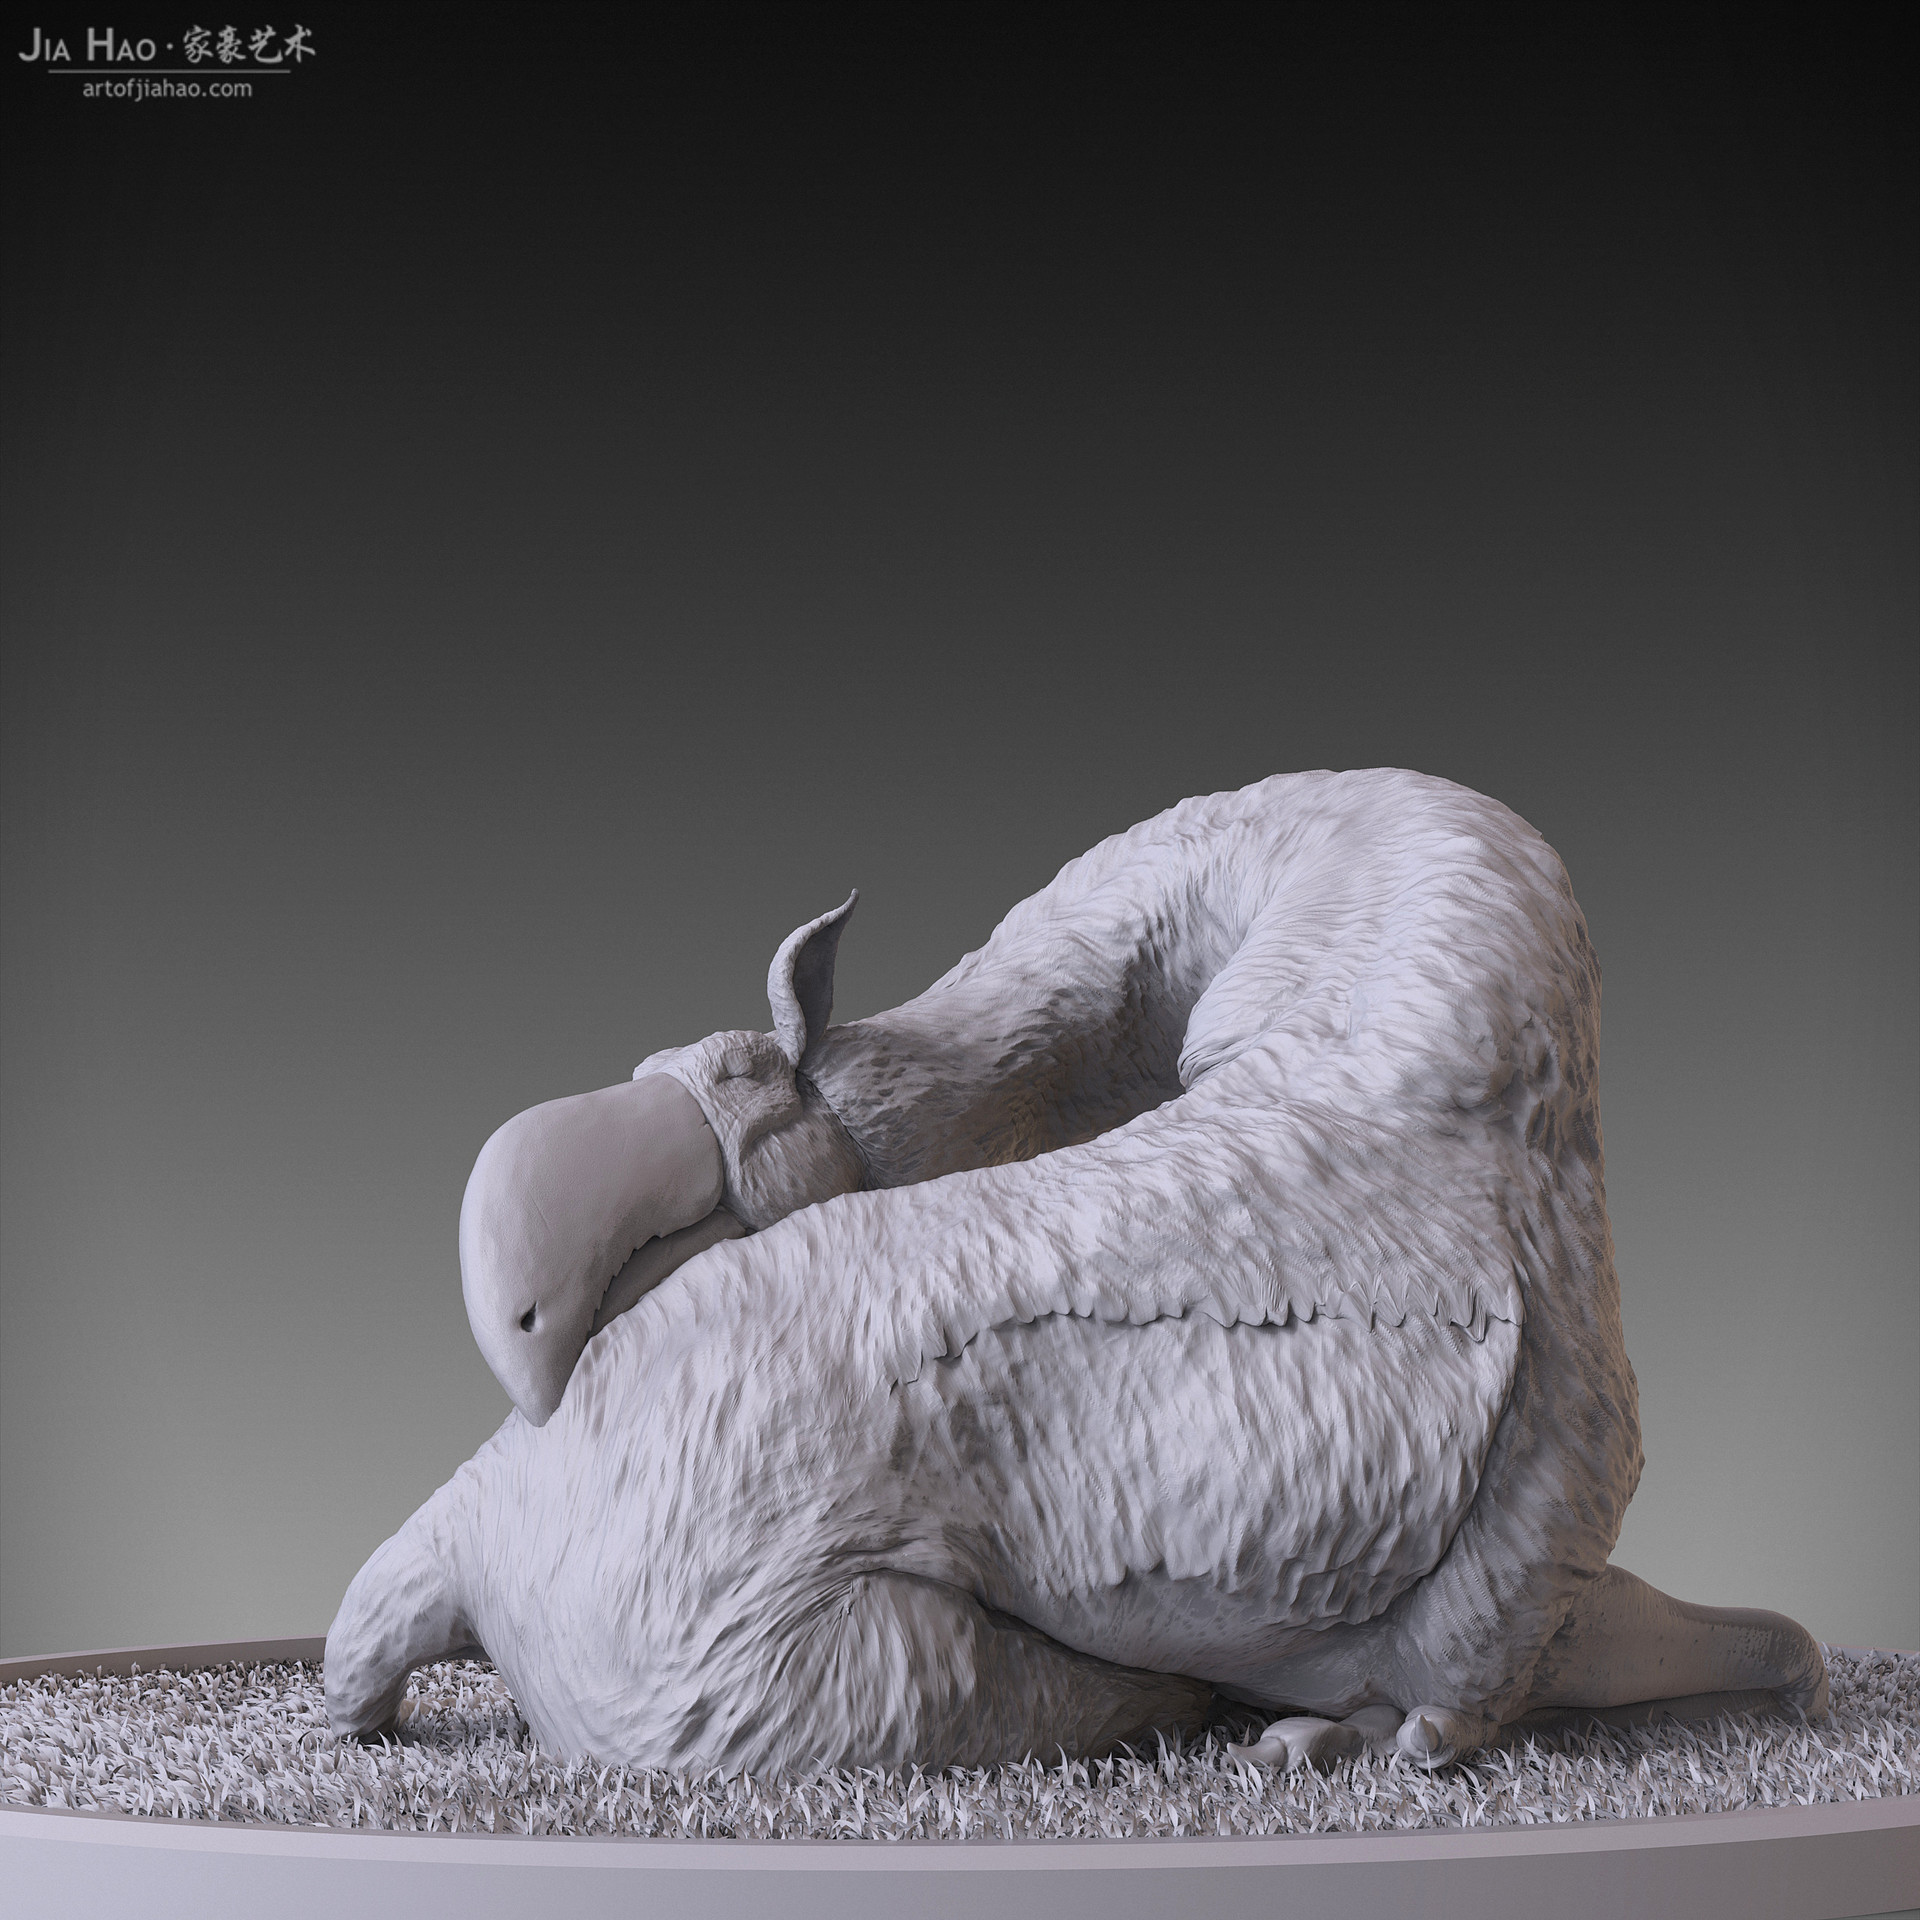 Jia hao 2017 toucaffesleeping digitalsculpting 04